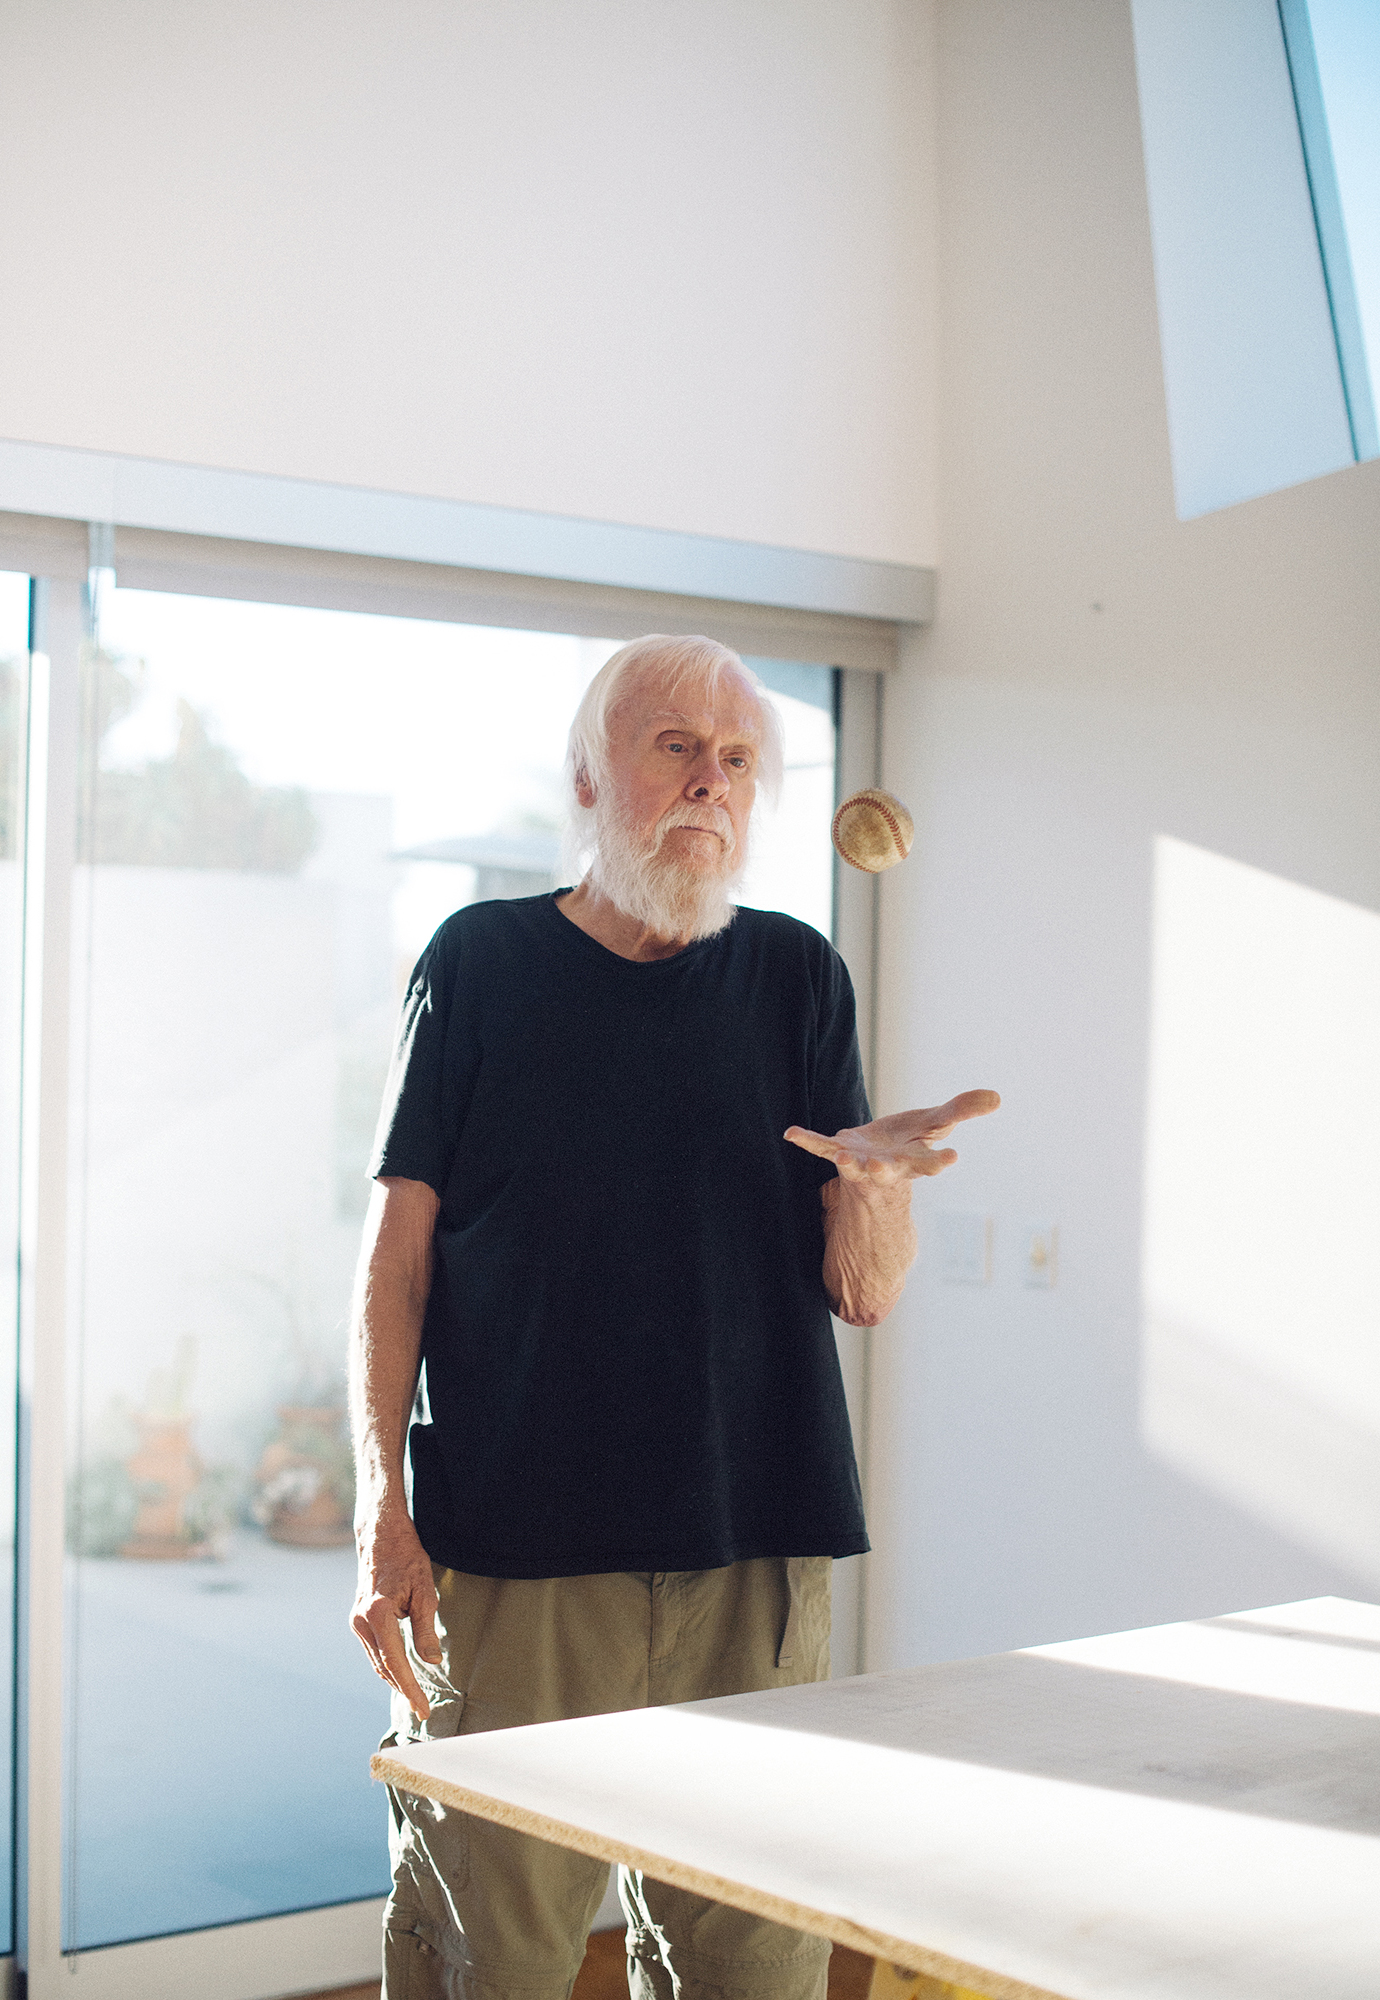 John Baldessari, Photographed for GQ, Los Angeles, 2015